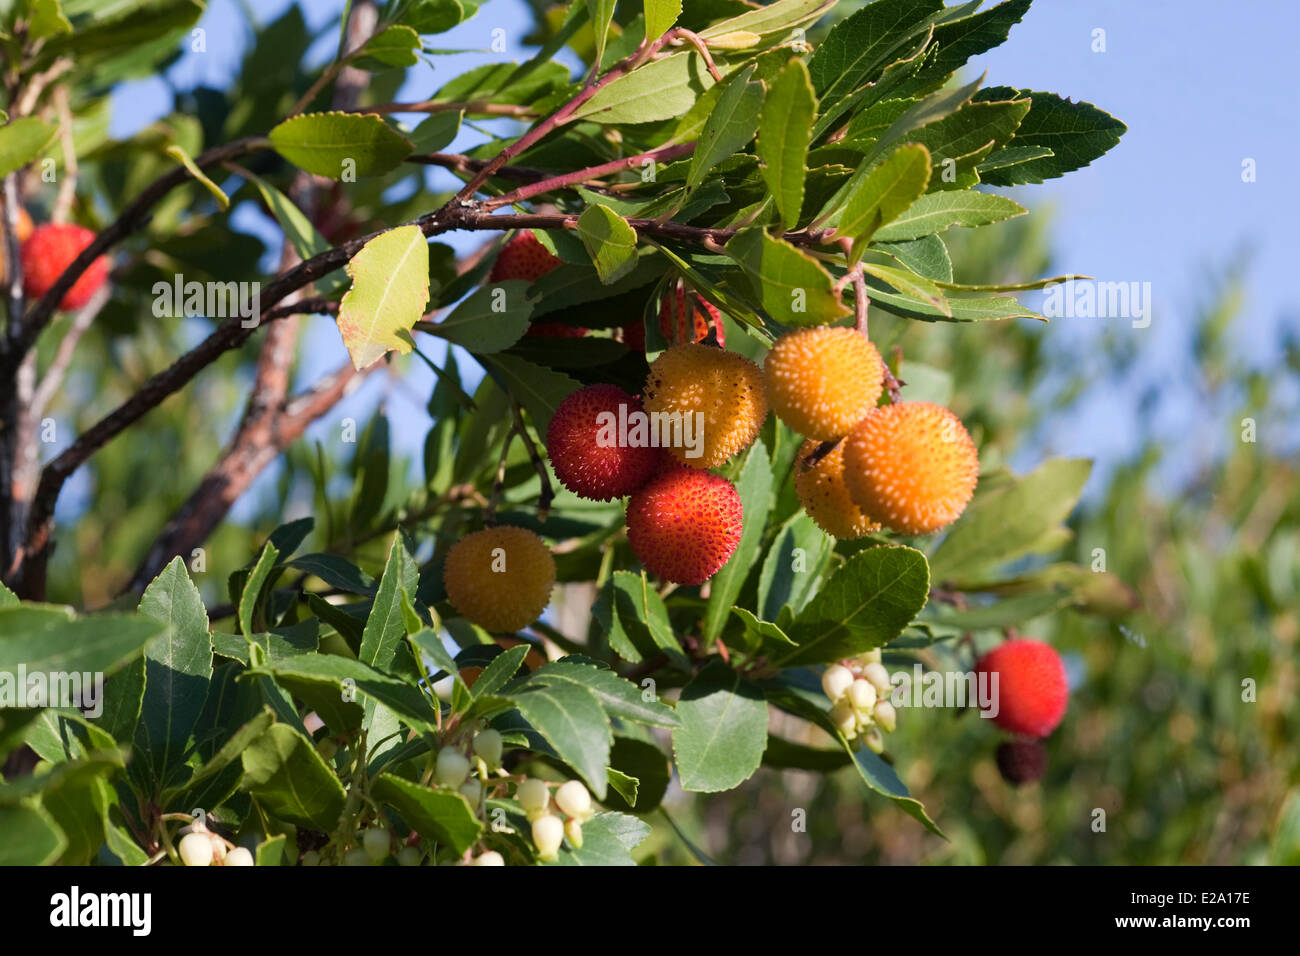 France, Corse, Ericales, Ericaceae, Strawberry Tree, Apple of Cain (Arbutus unedo), two coloured fruits and flowers - Stock Image